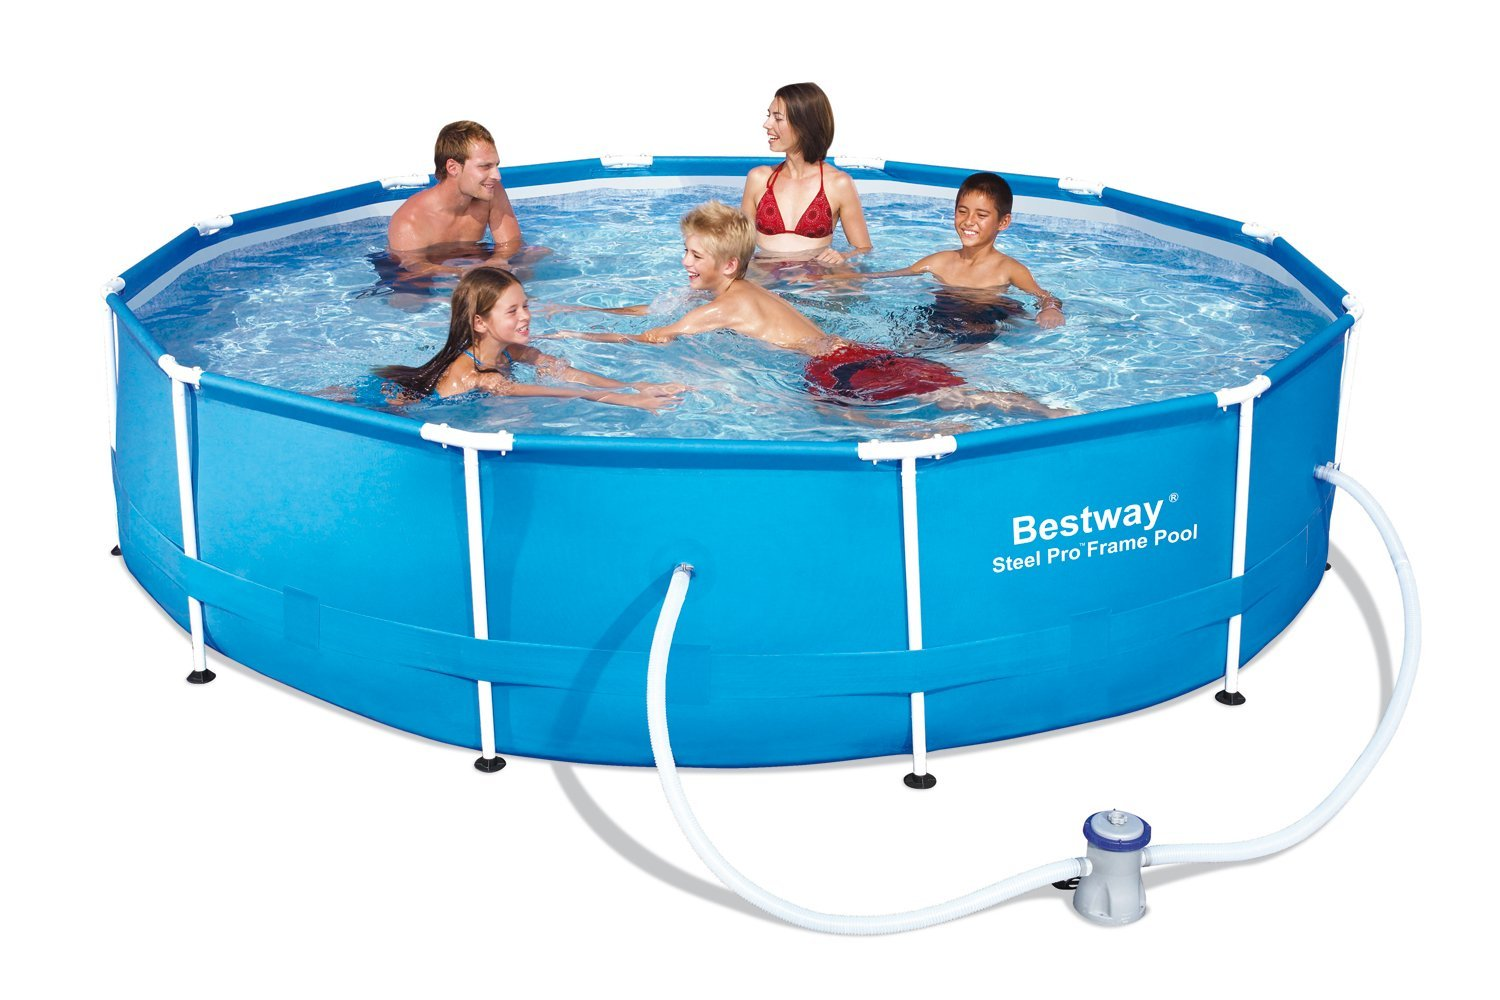 Bestway piscine ronde steel frame le test de la r daction for Bestway piscine